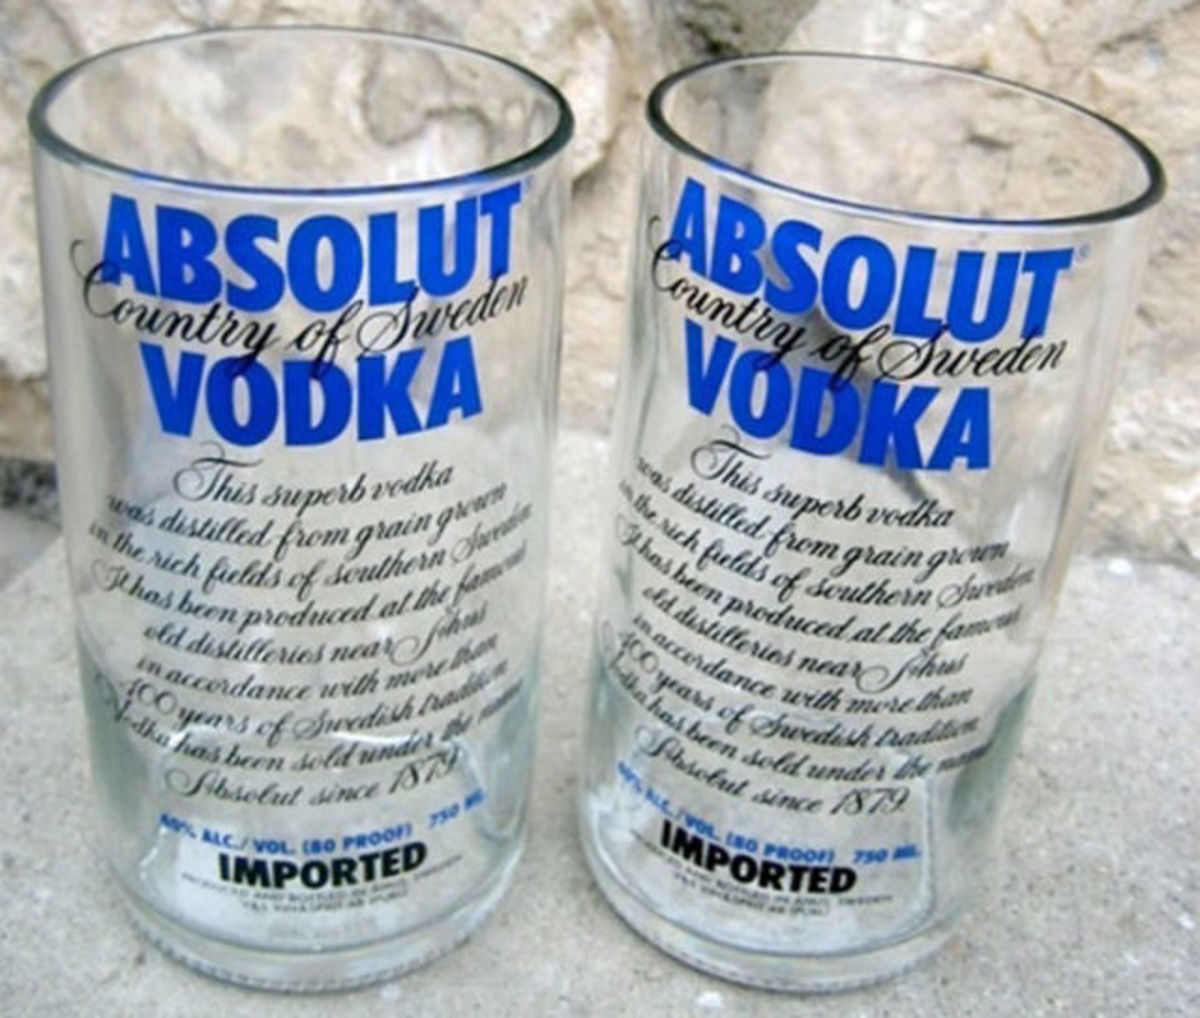 Glasses like these are real conversation starters.